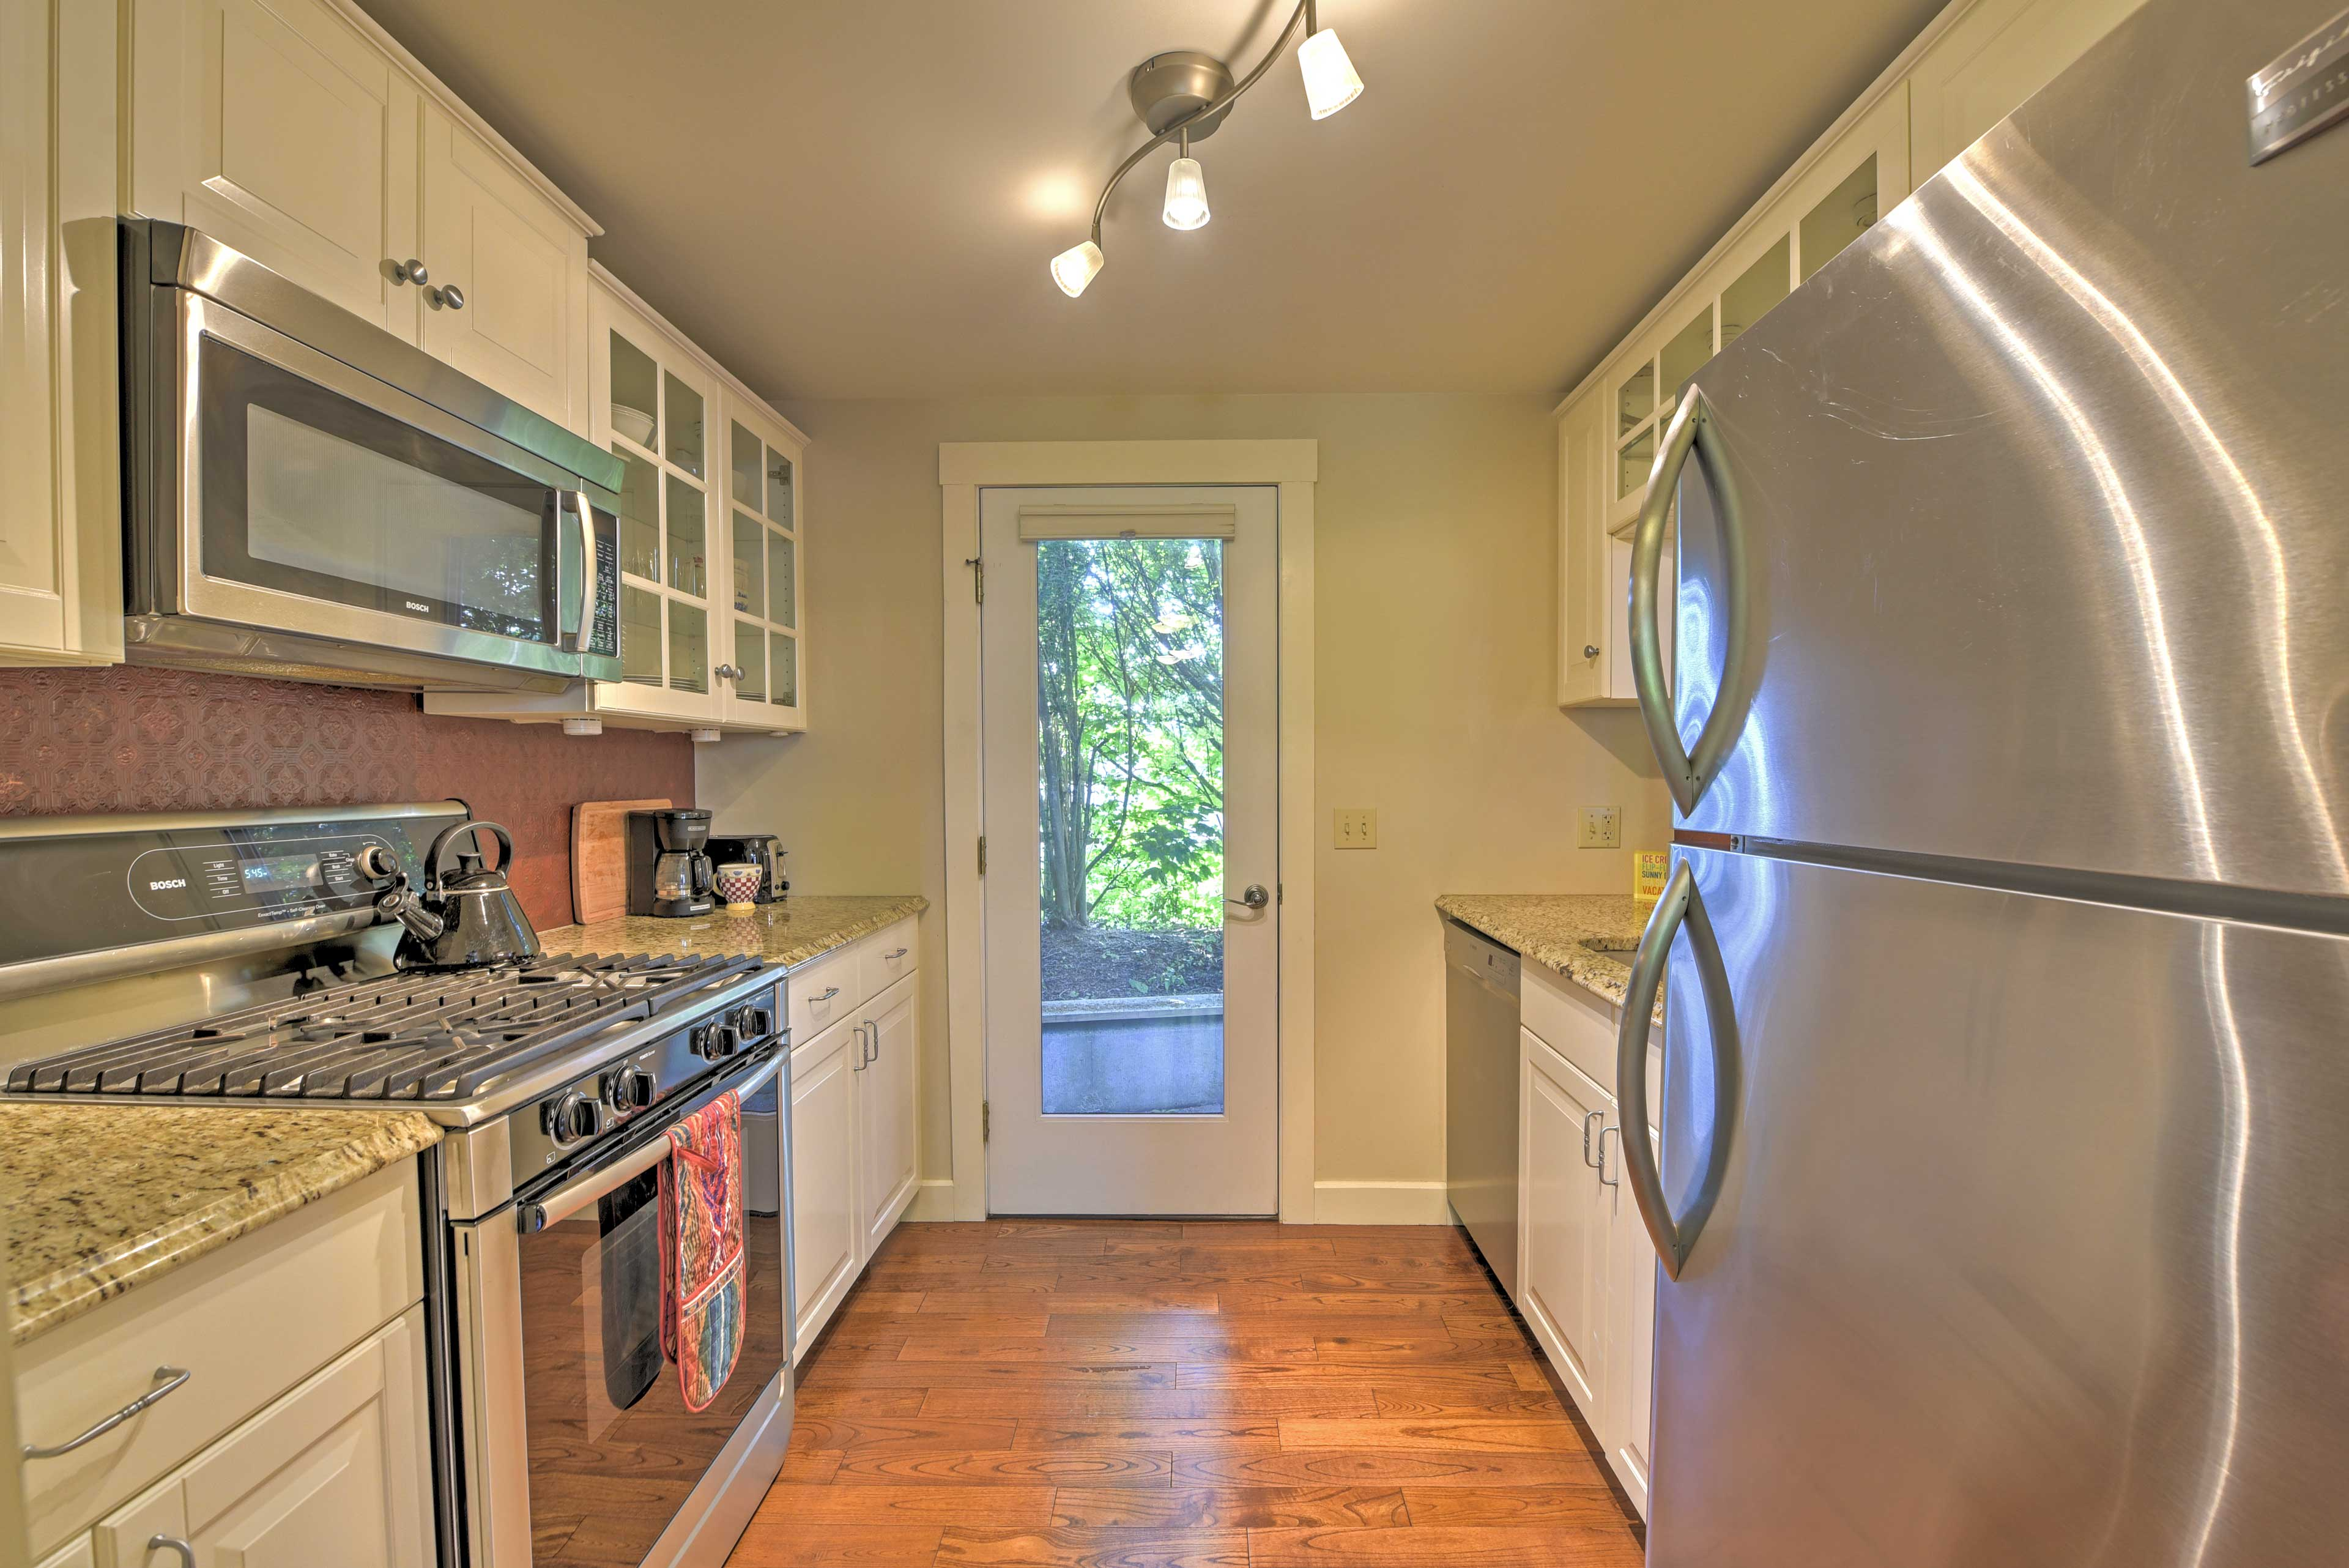 The fully equipped kitchen features Bosch stainless steel appliances.